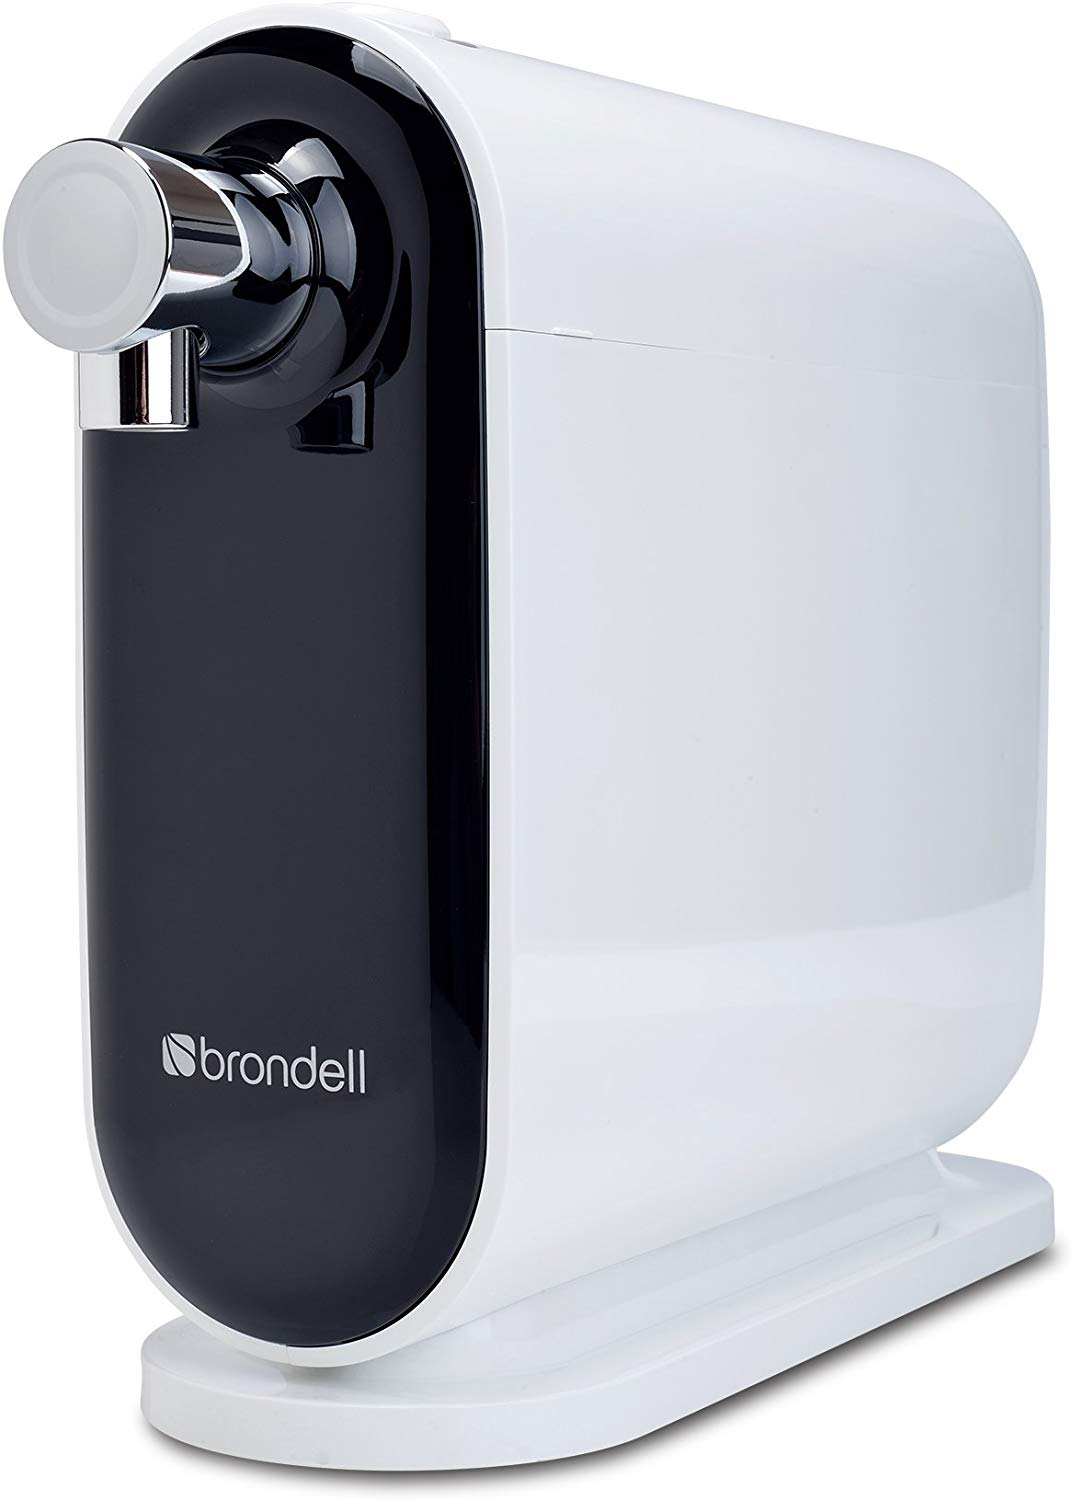 4. Brondell H630 H2O+ Cypress Countertop Water Filter